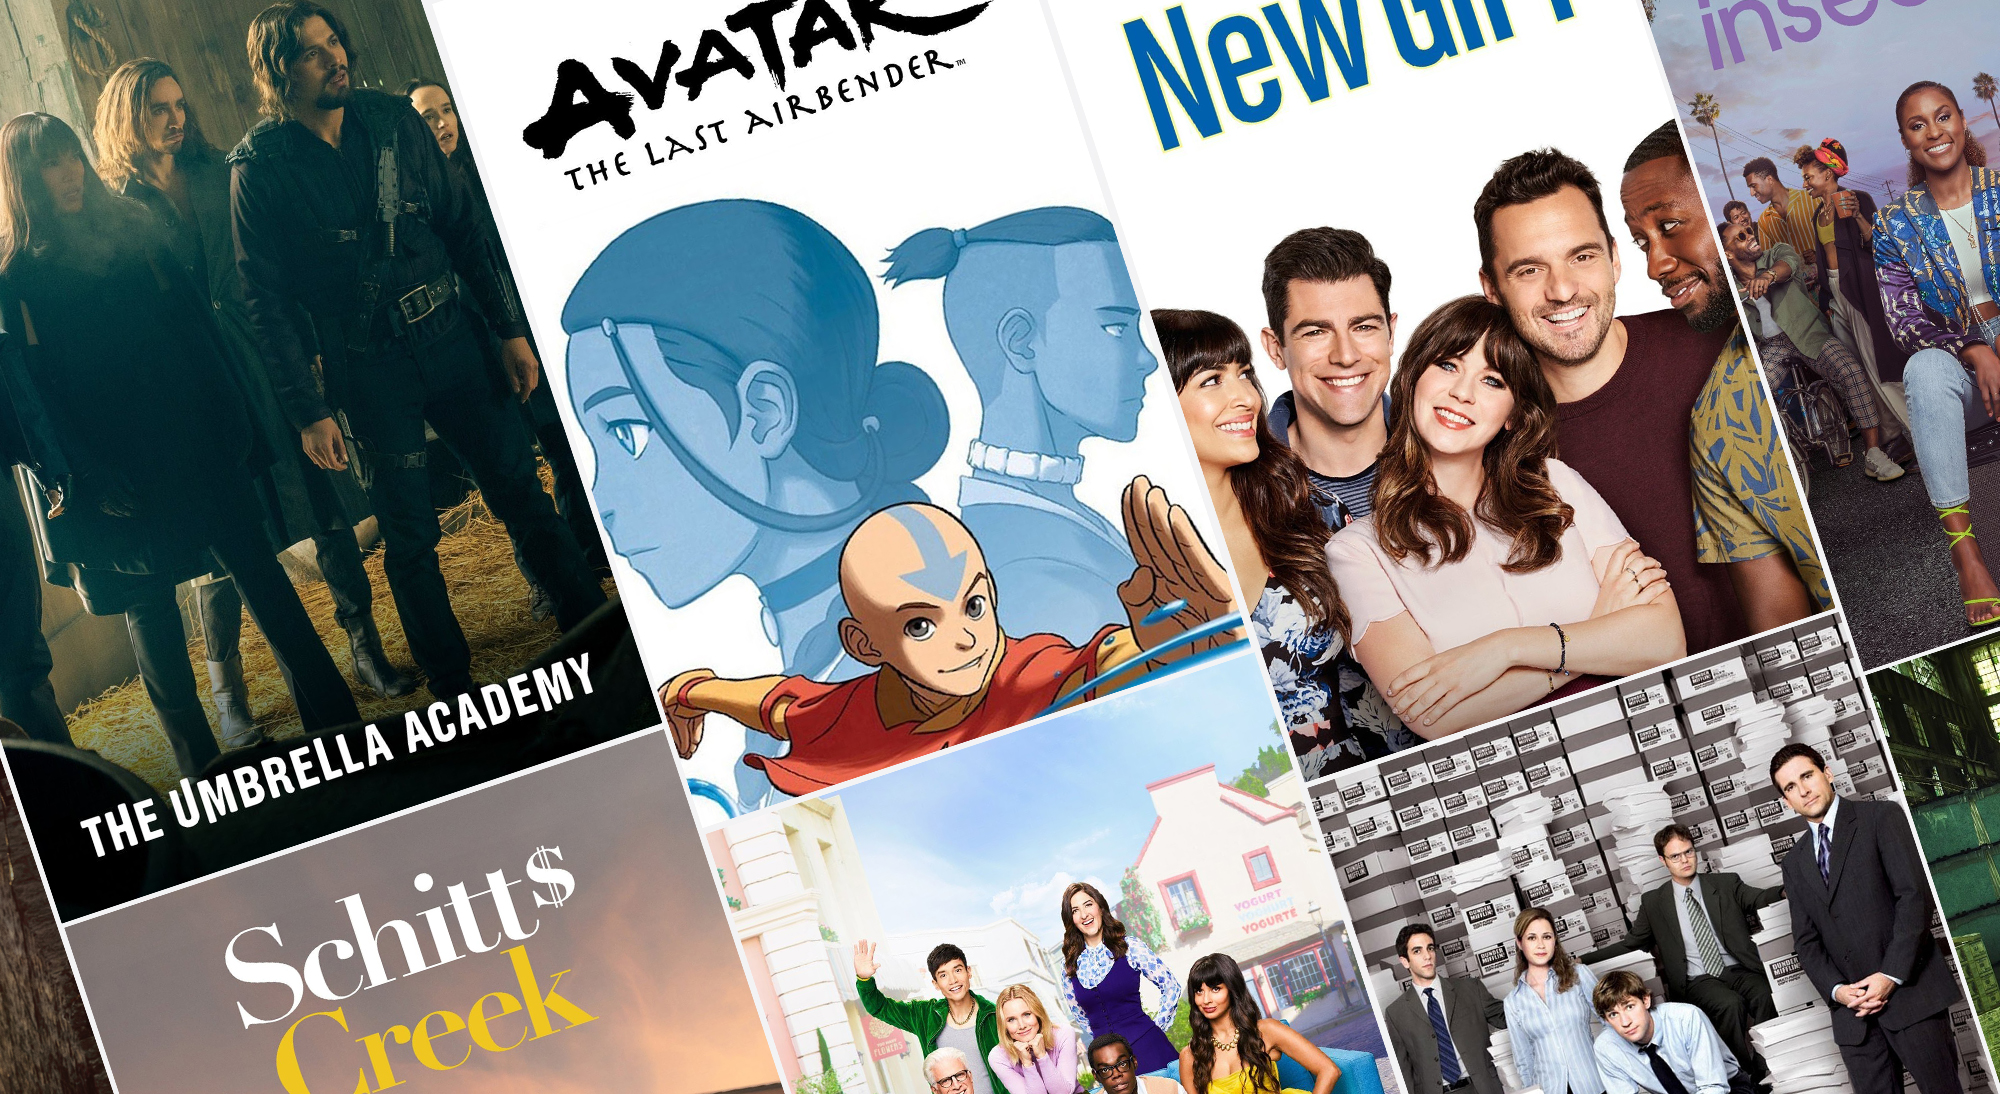 A composite photo of television show posters including for Avatar the Last Air Bender, The Office, Insecure, New Girl, and Umbrella Academy